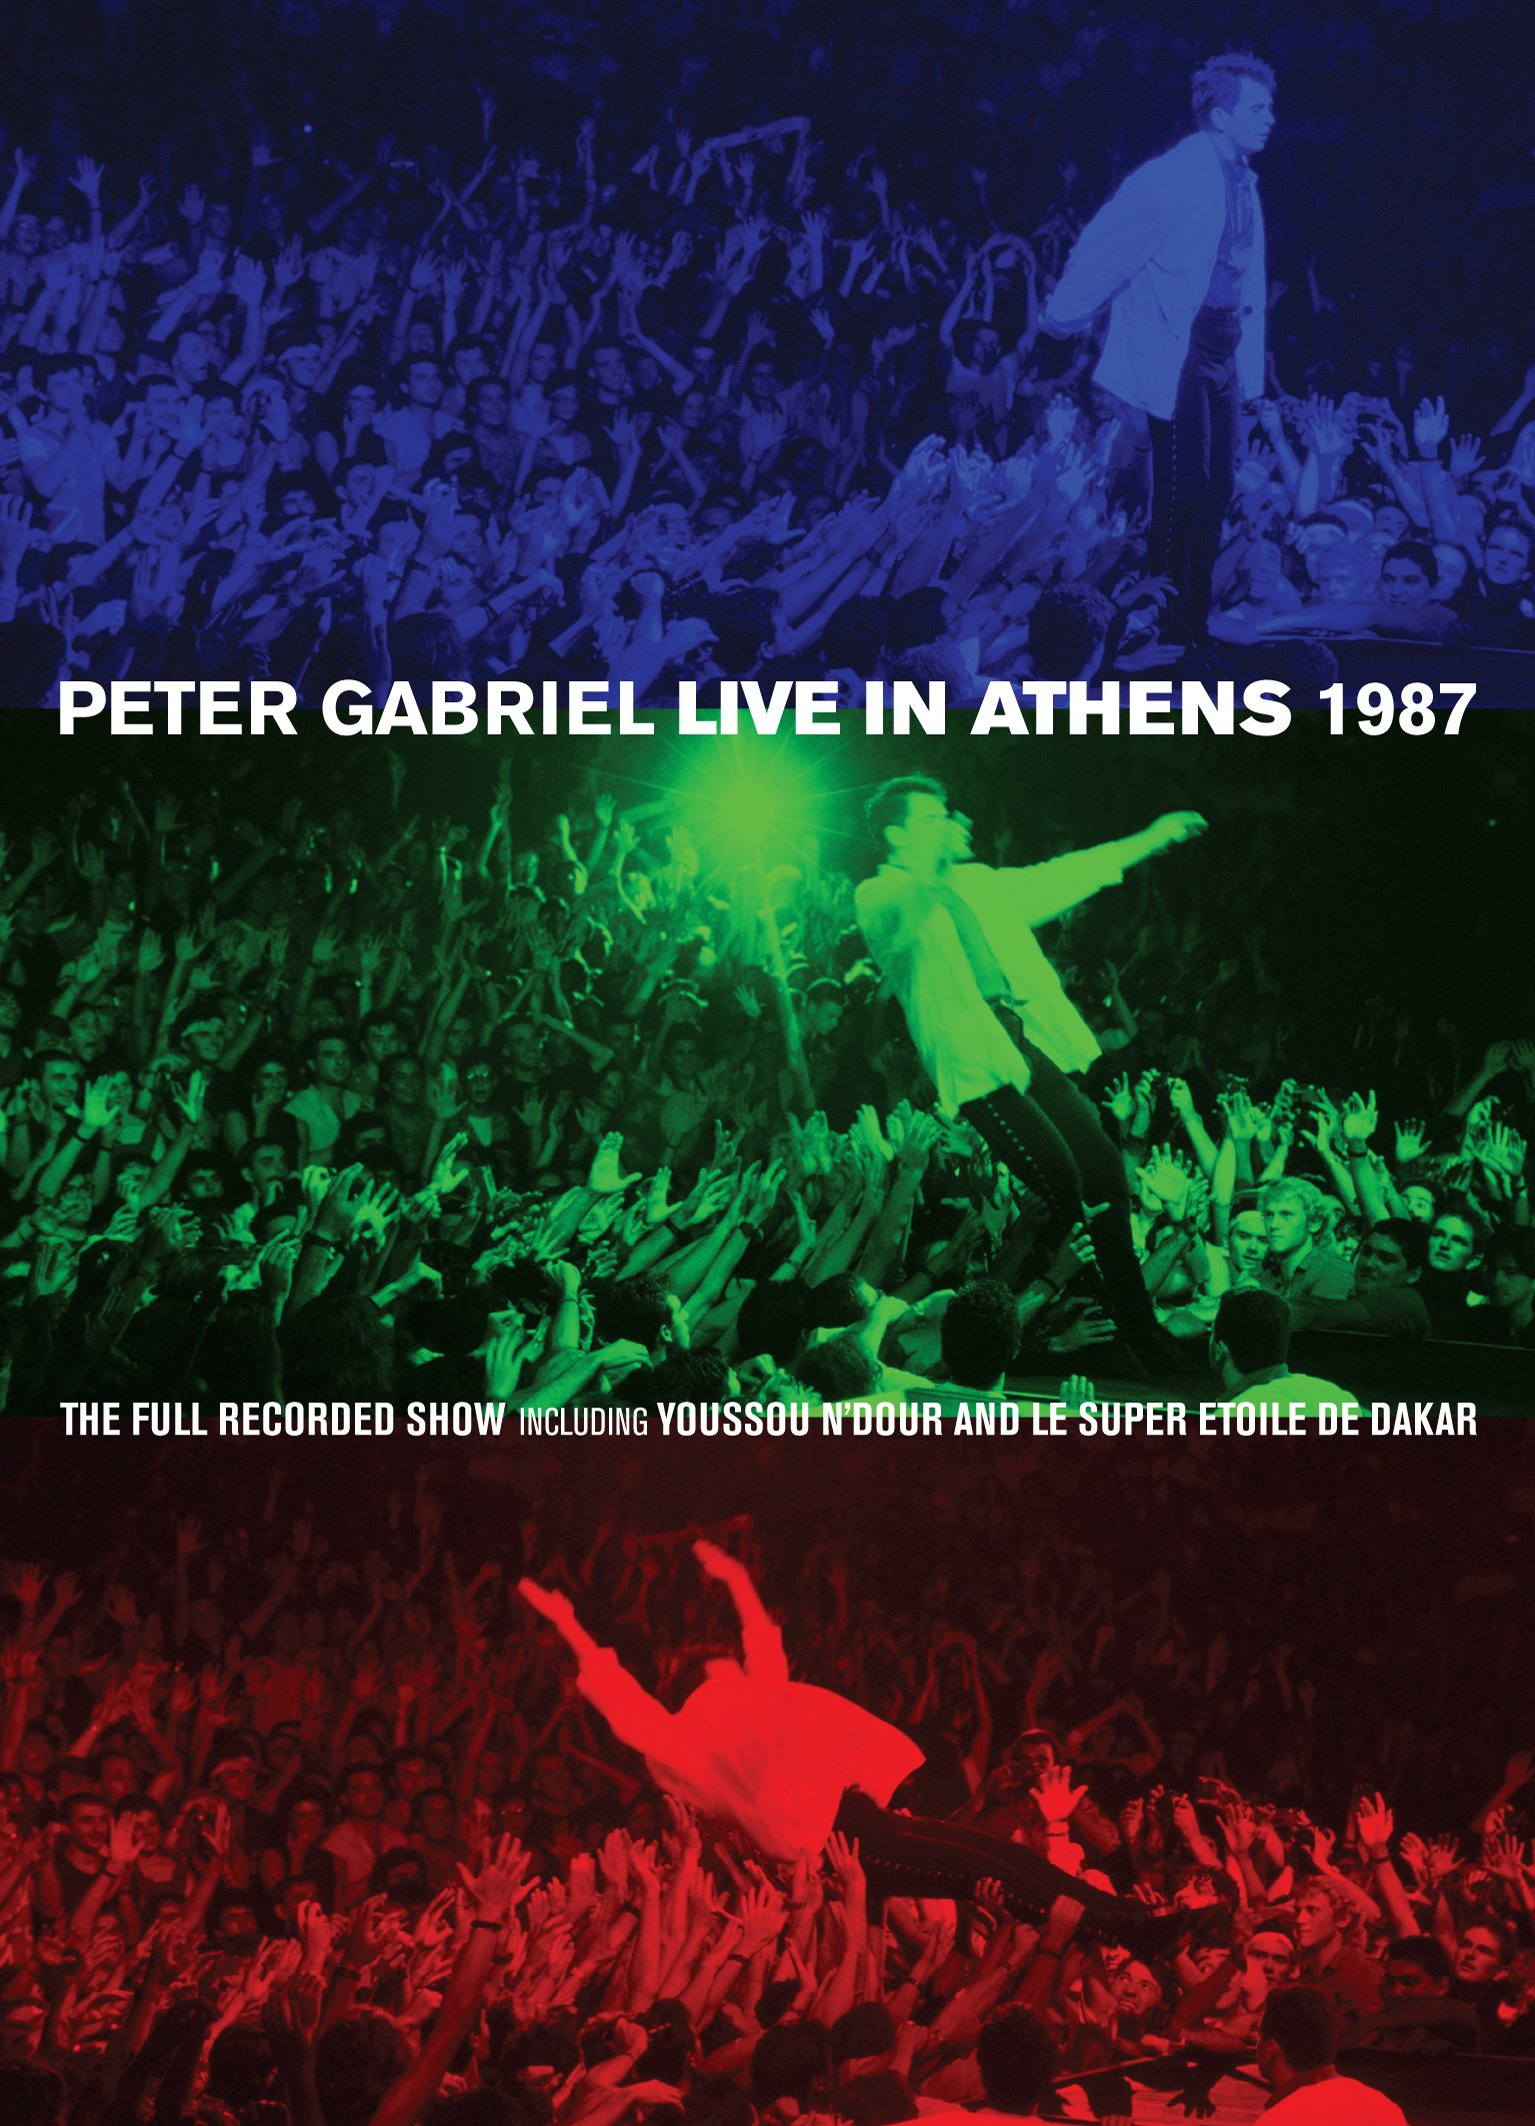 Peter Gabriel - Live In Athens 1987 and Play (2PC)